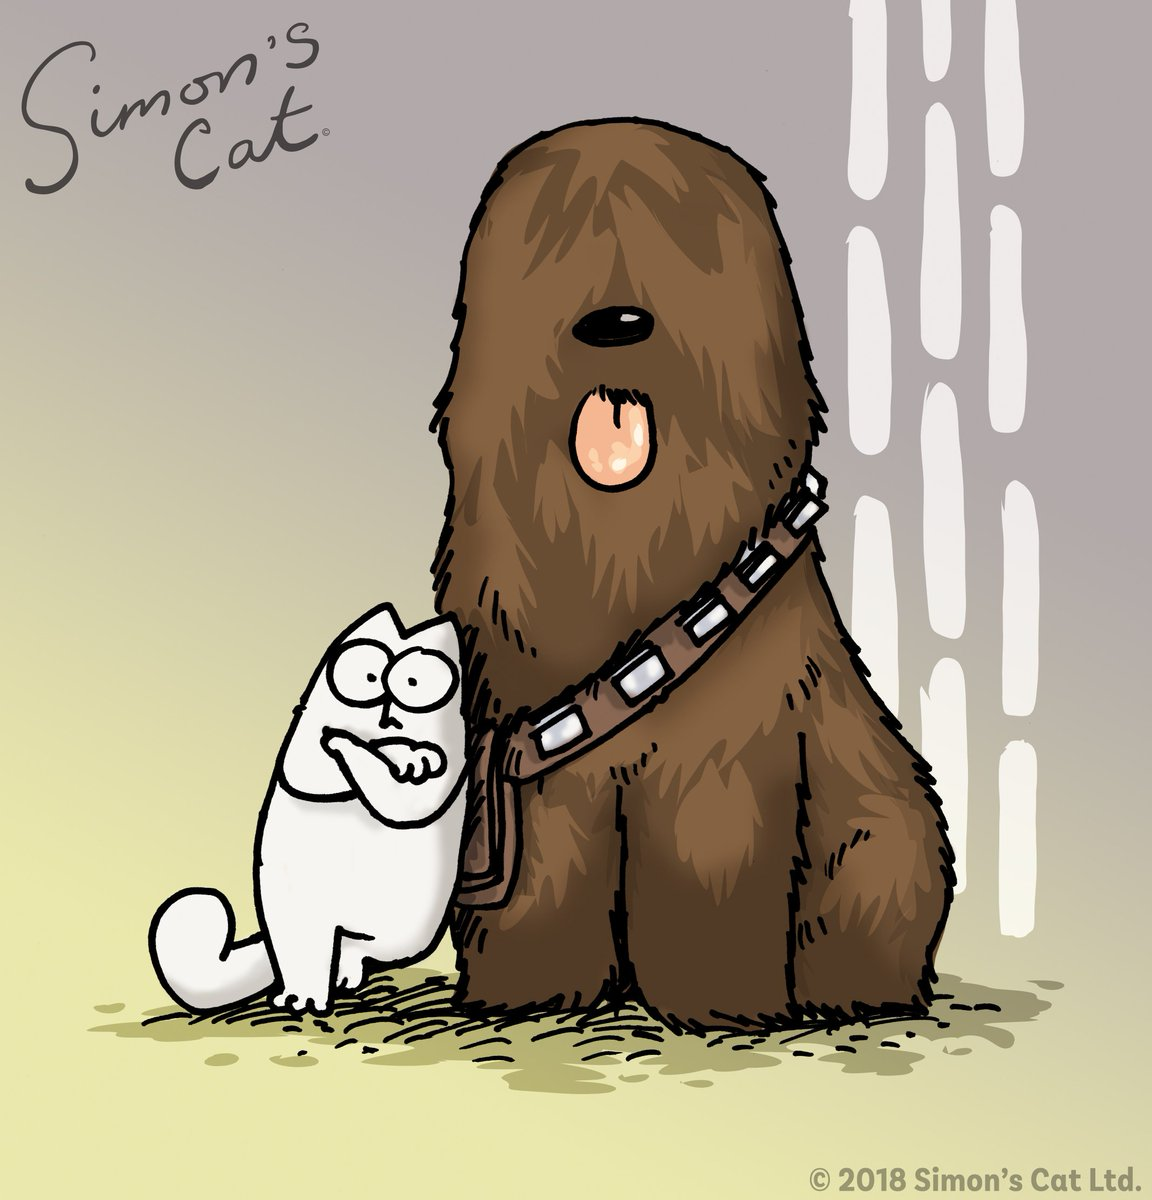 Simon's Cat - May the Fourth be with you